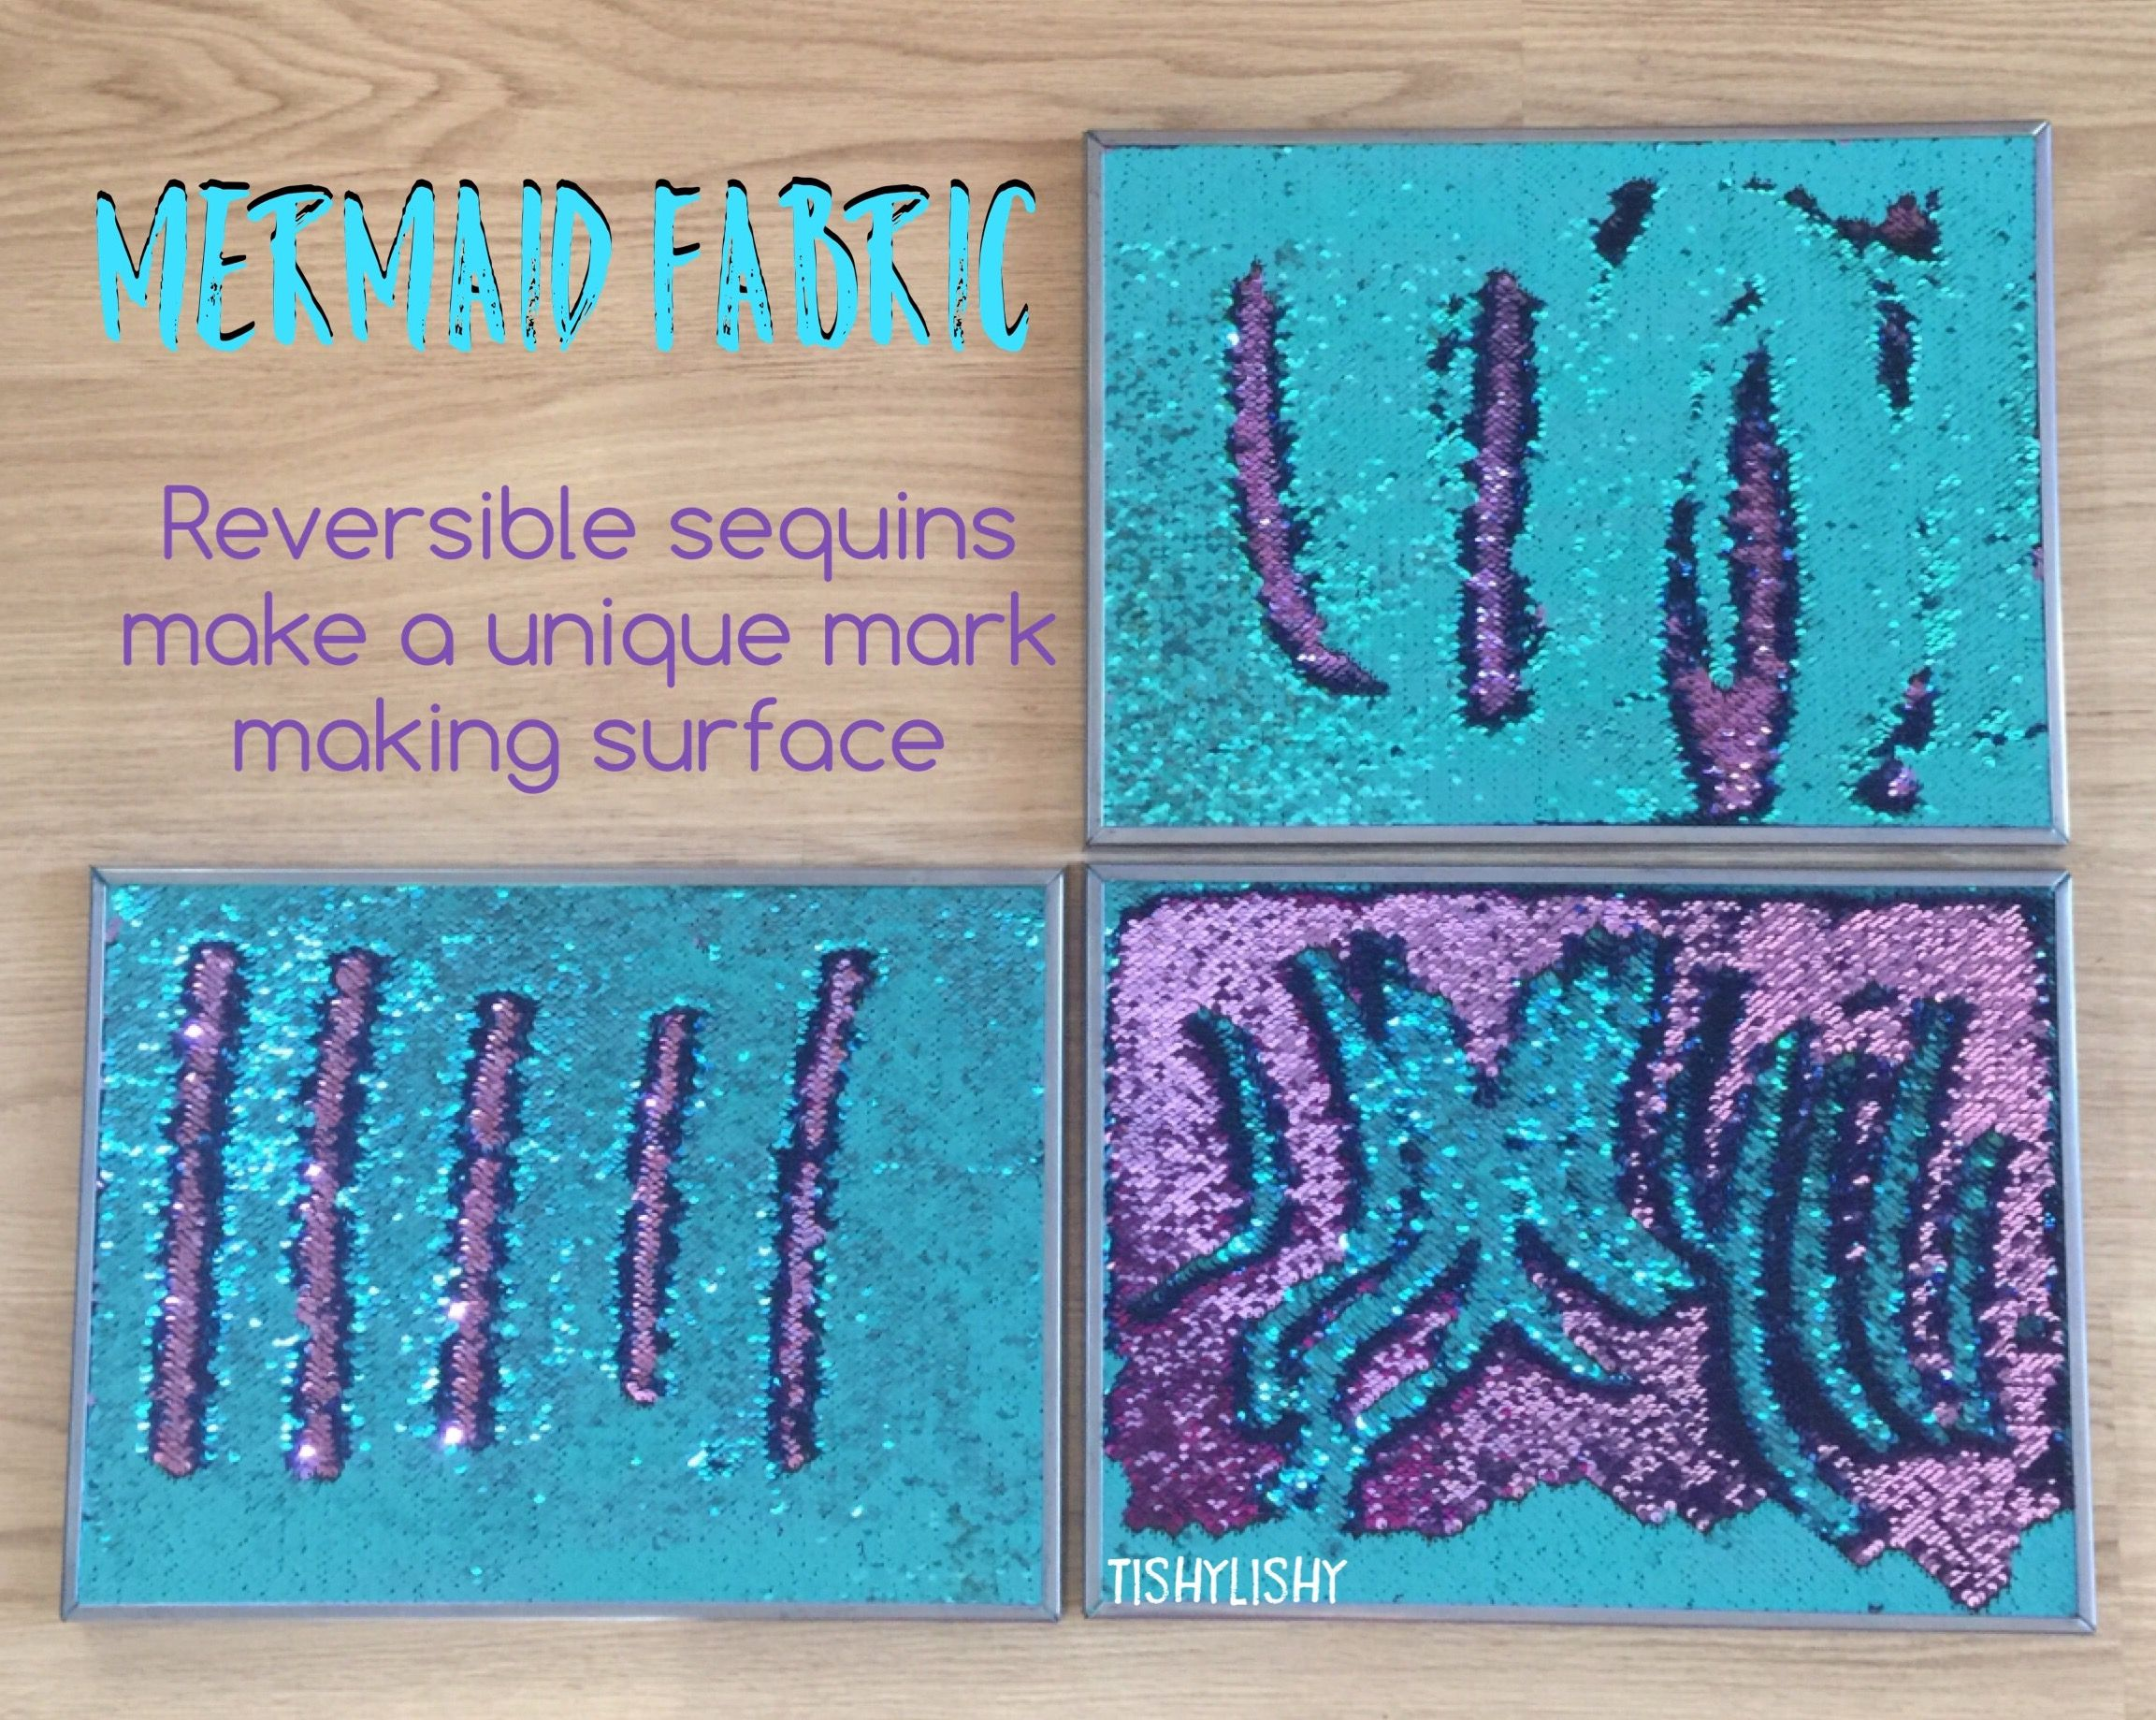 Mermaid fabric. A very unique mark making surface for my eyfs class.